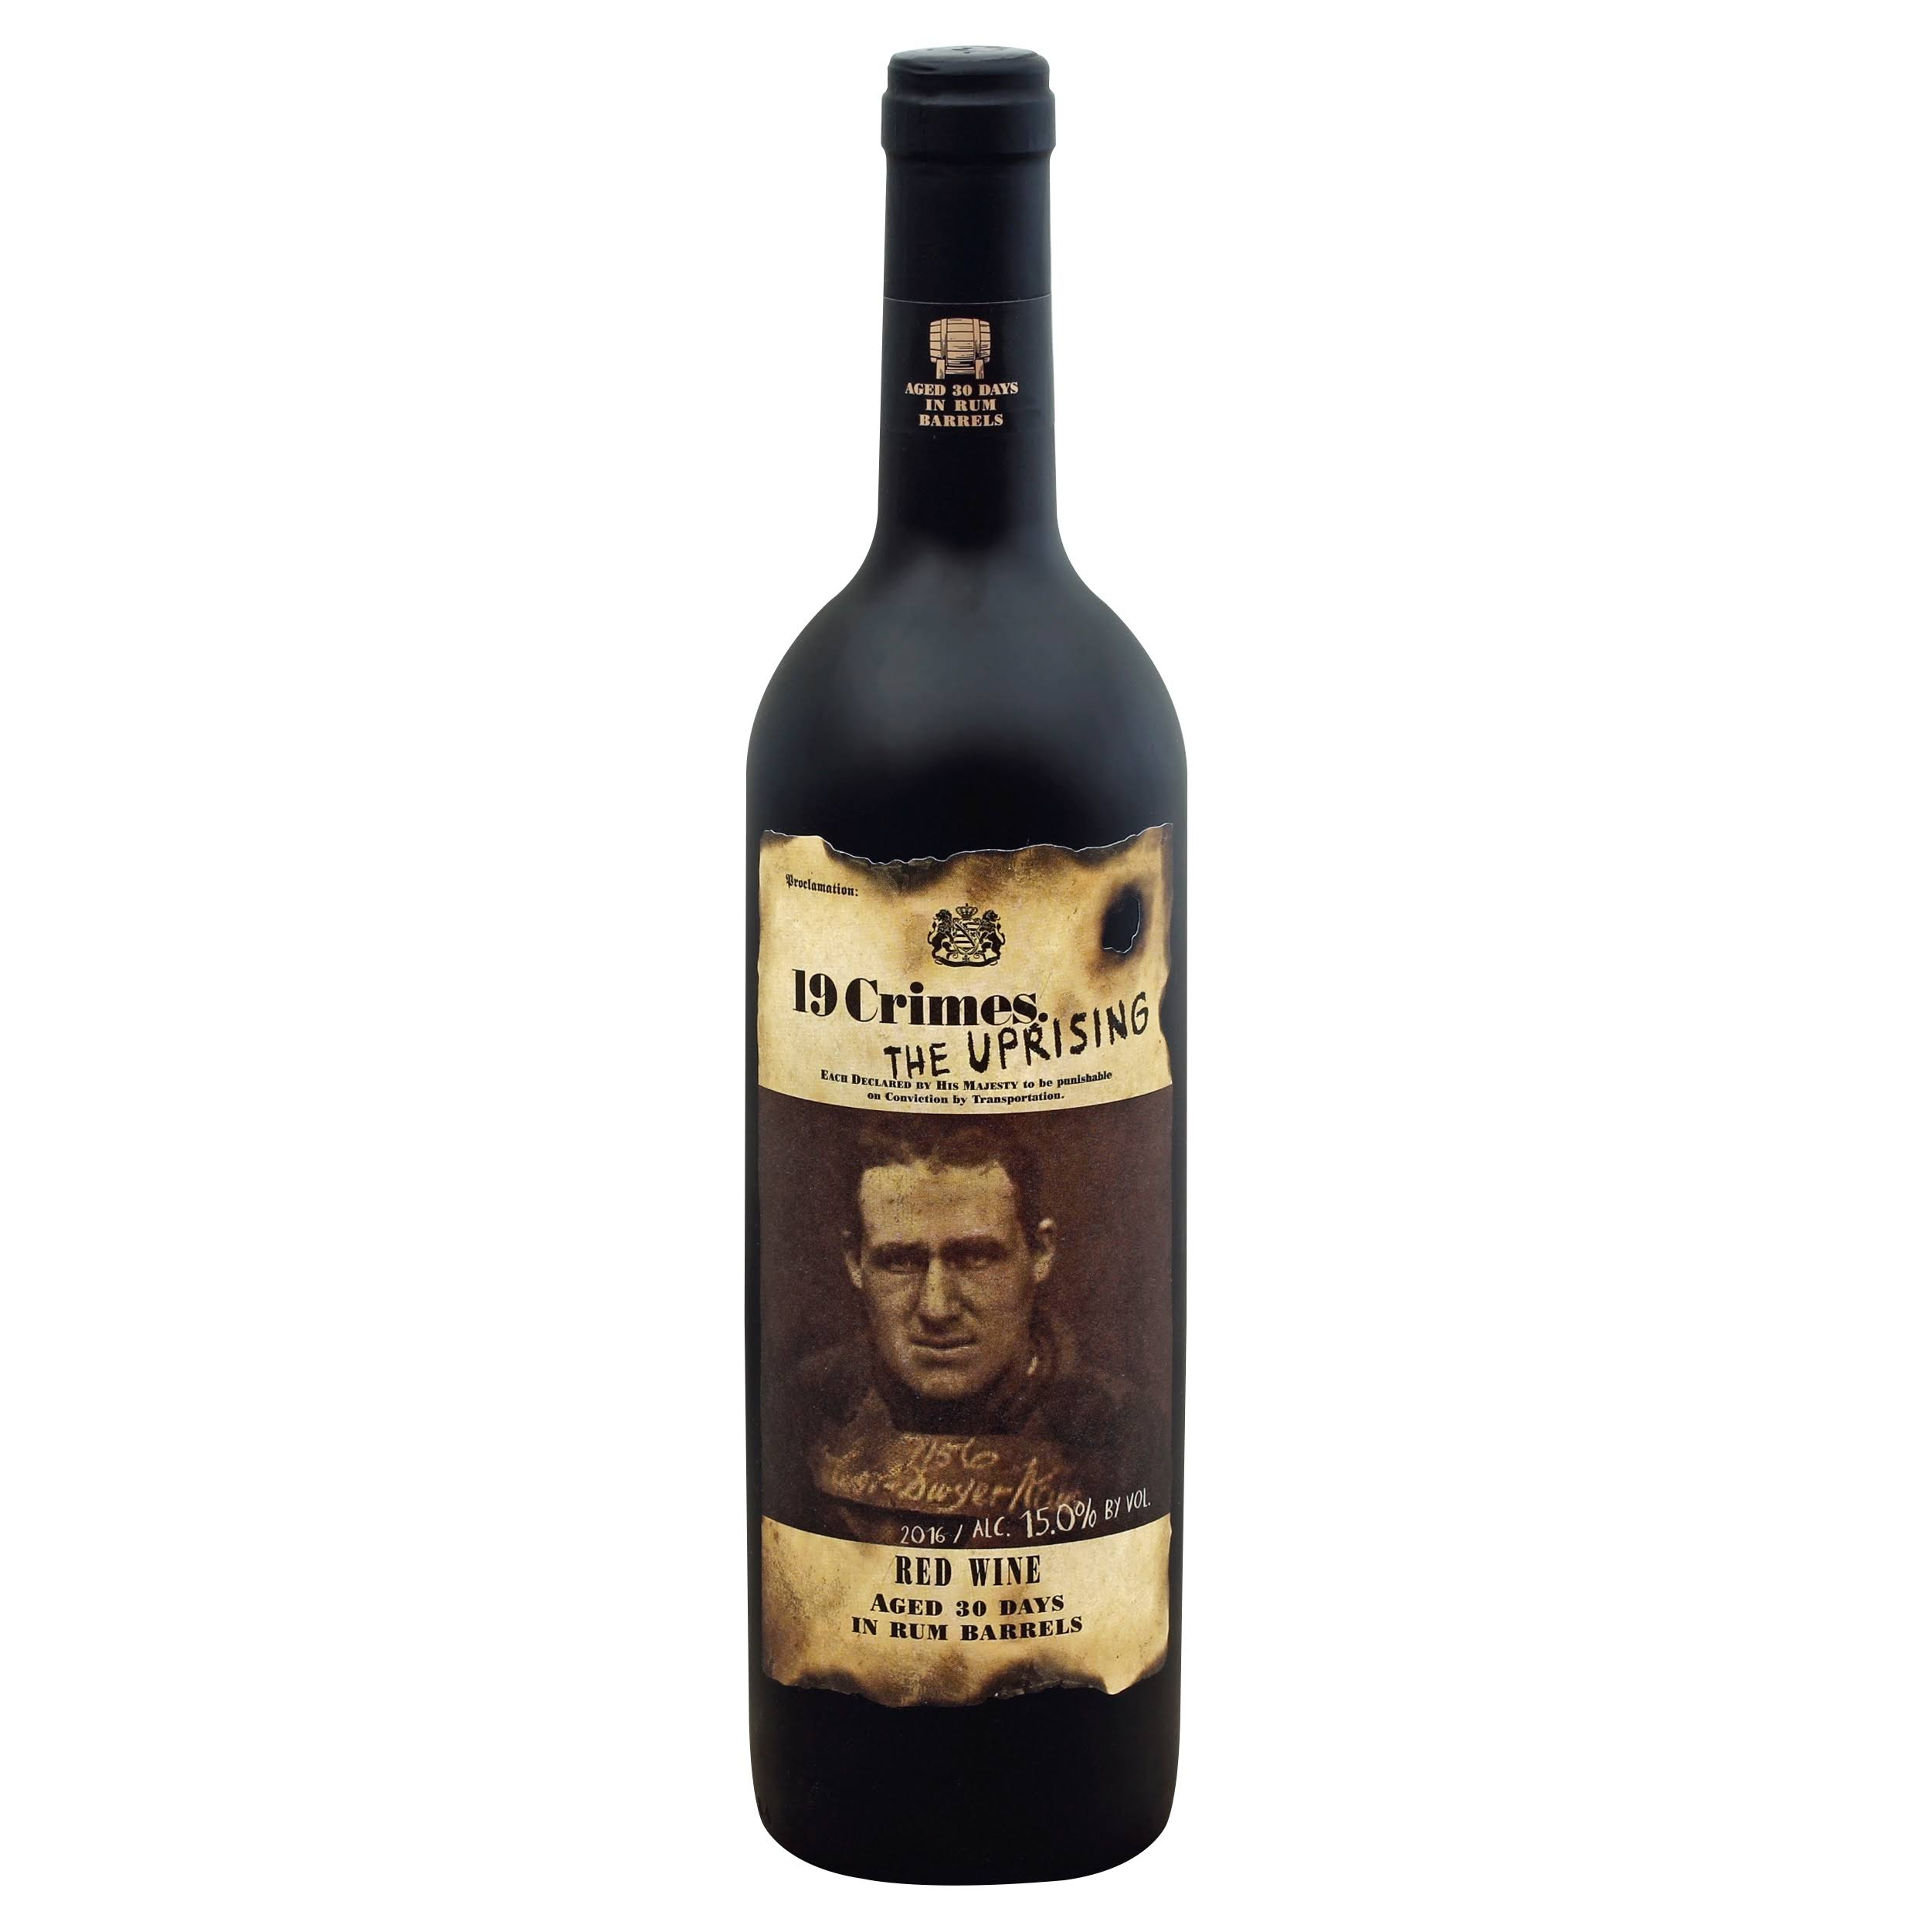 19 Crimes Red Wine, The Uprising, 2016 - 750 ml